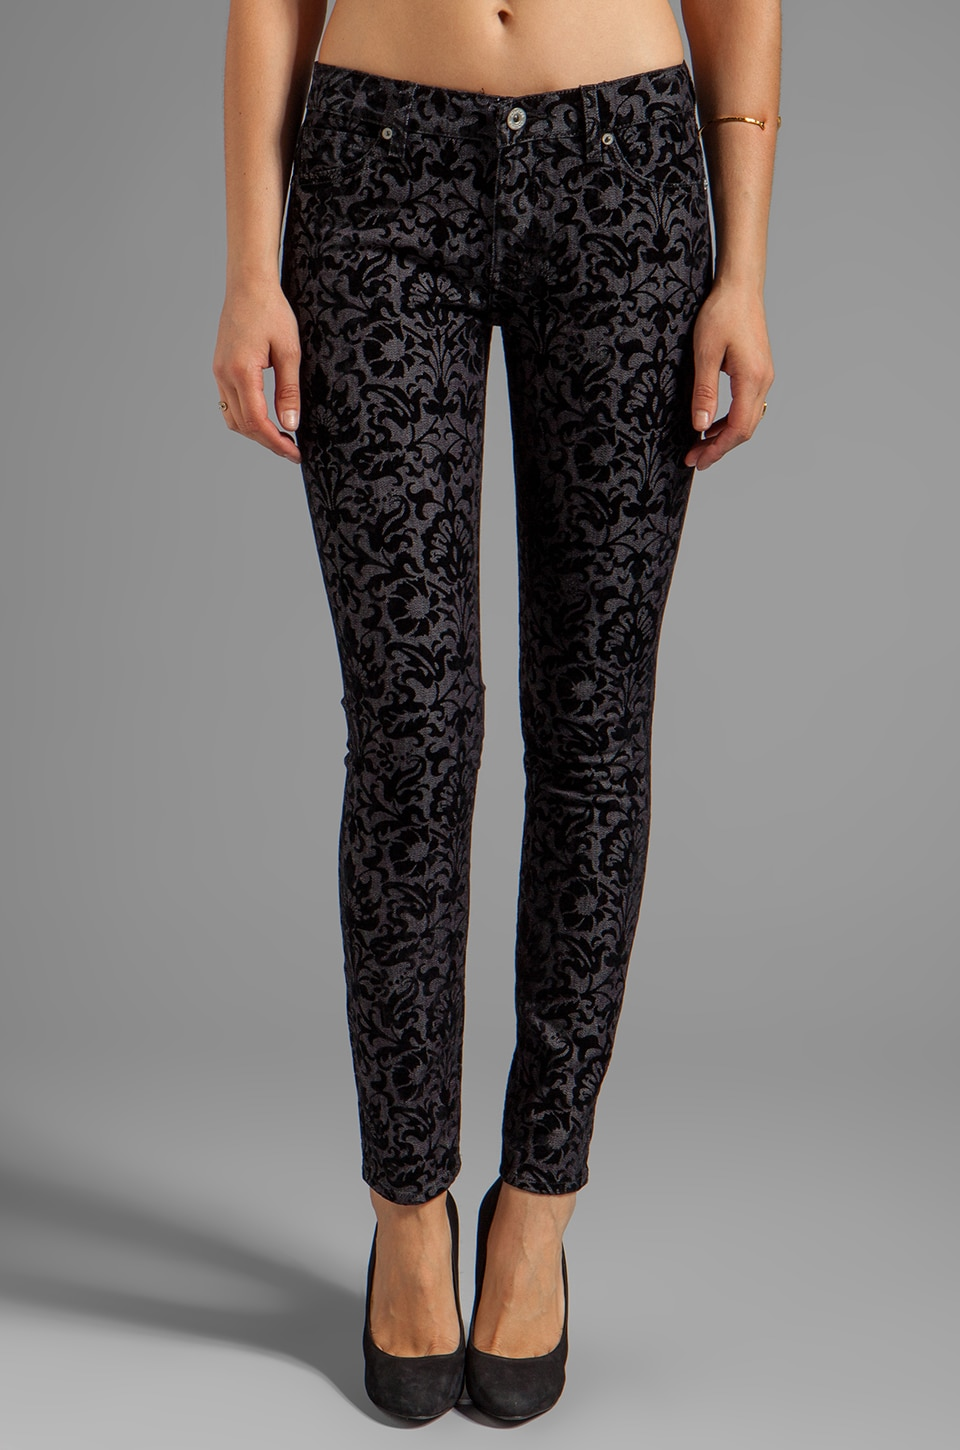 Dakota Collective Khloe Skinny in Black Brocade